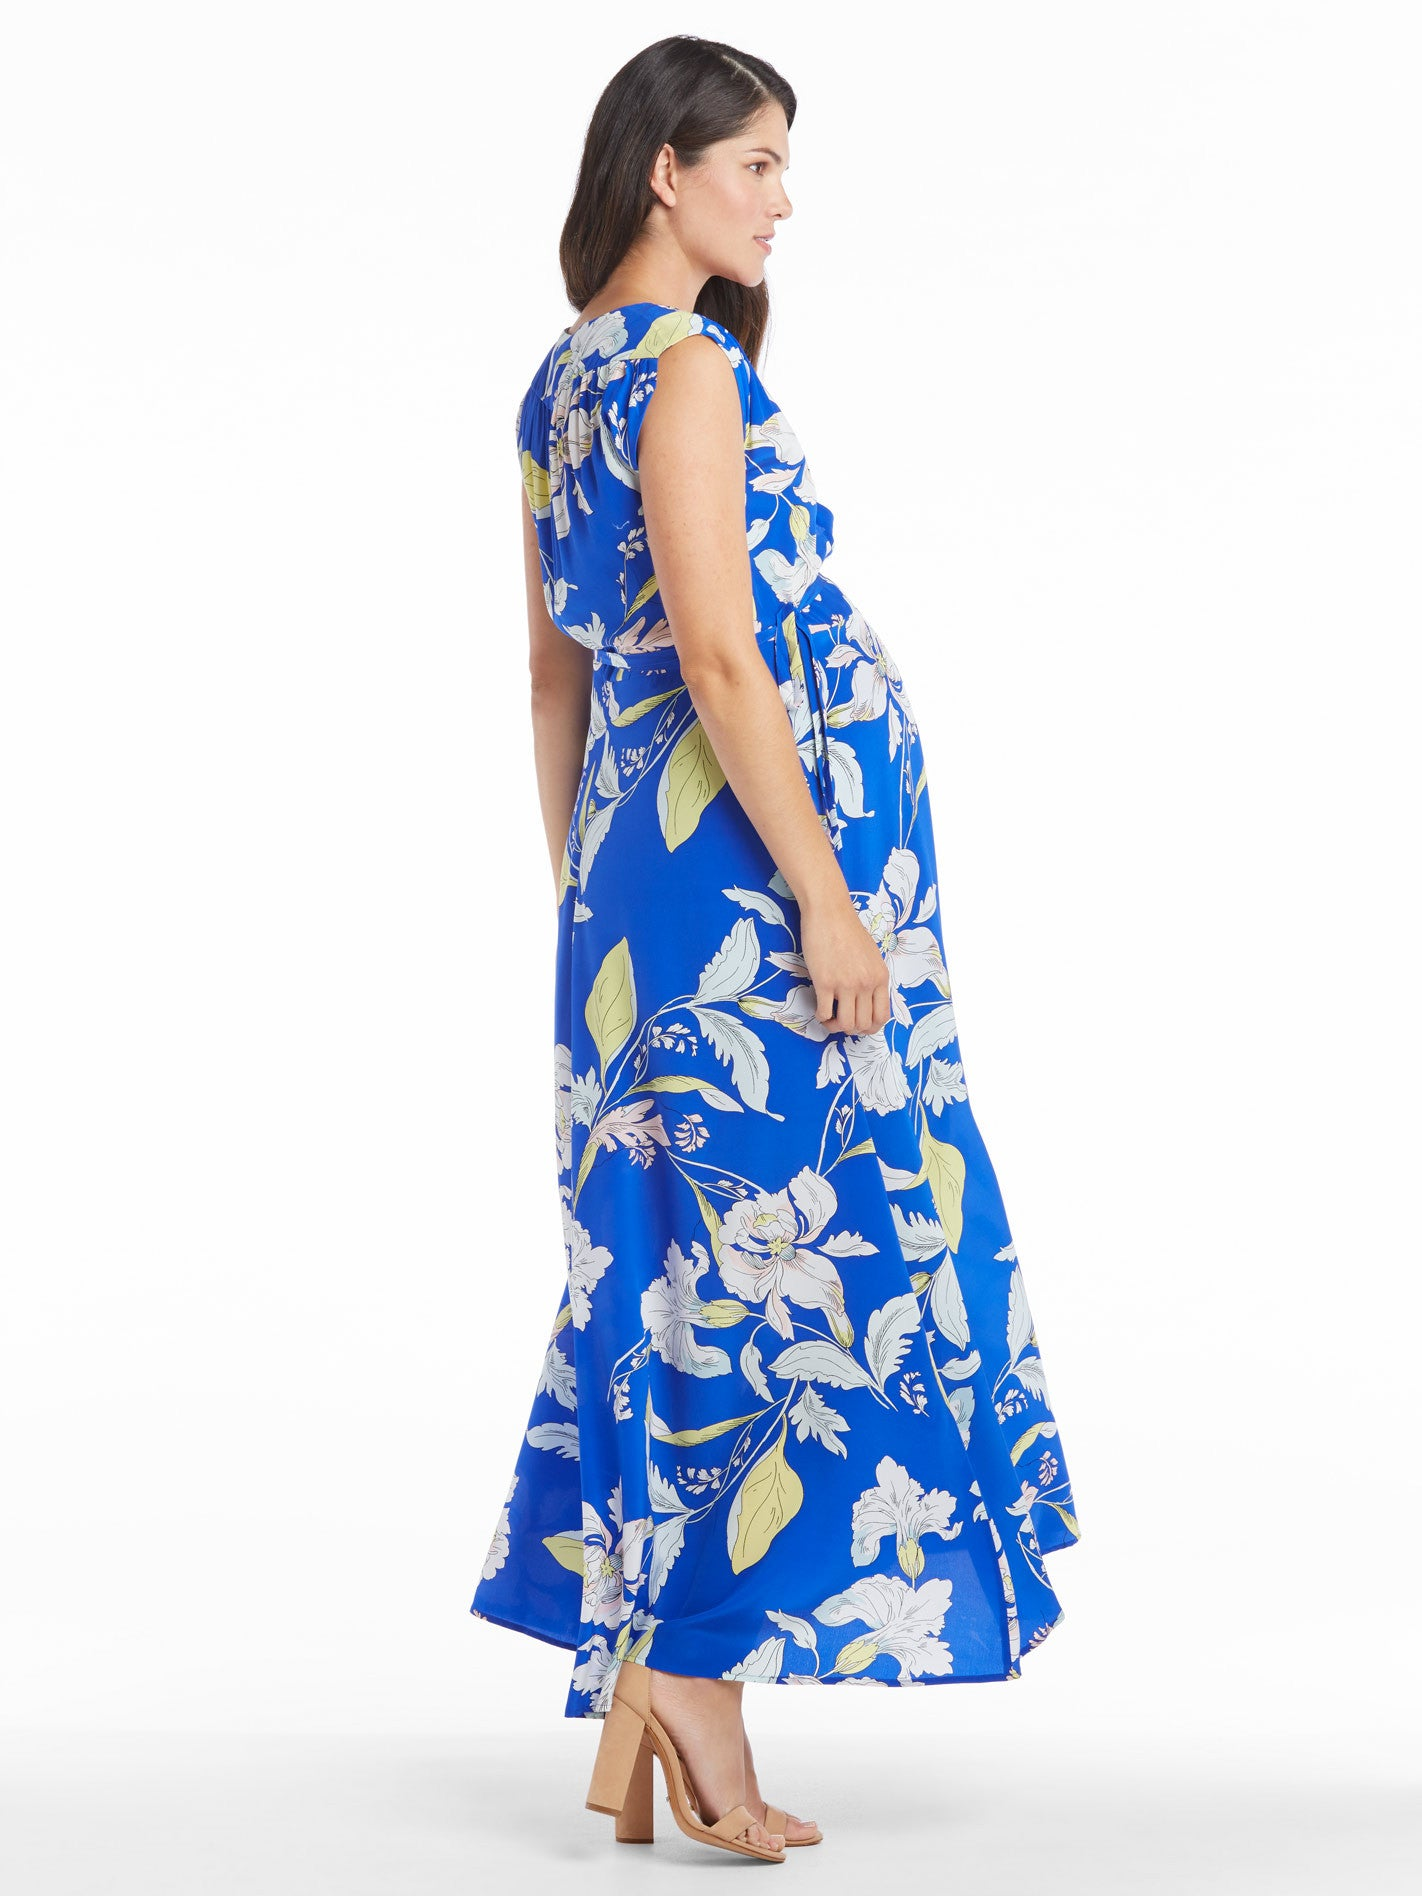 Yumi Kim Swept Away Maxi Dress - Eastern Garden | TILDEN